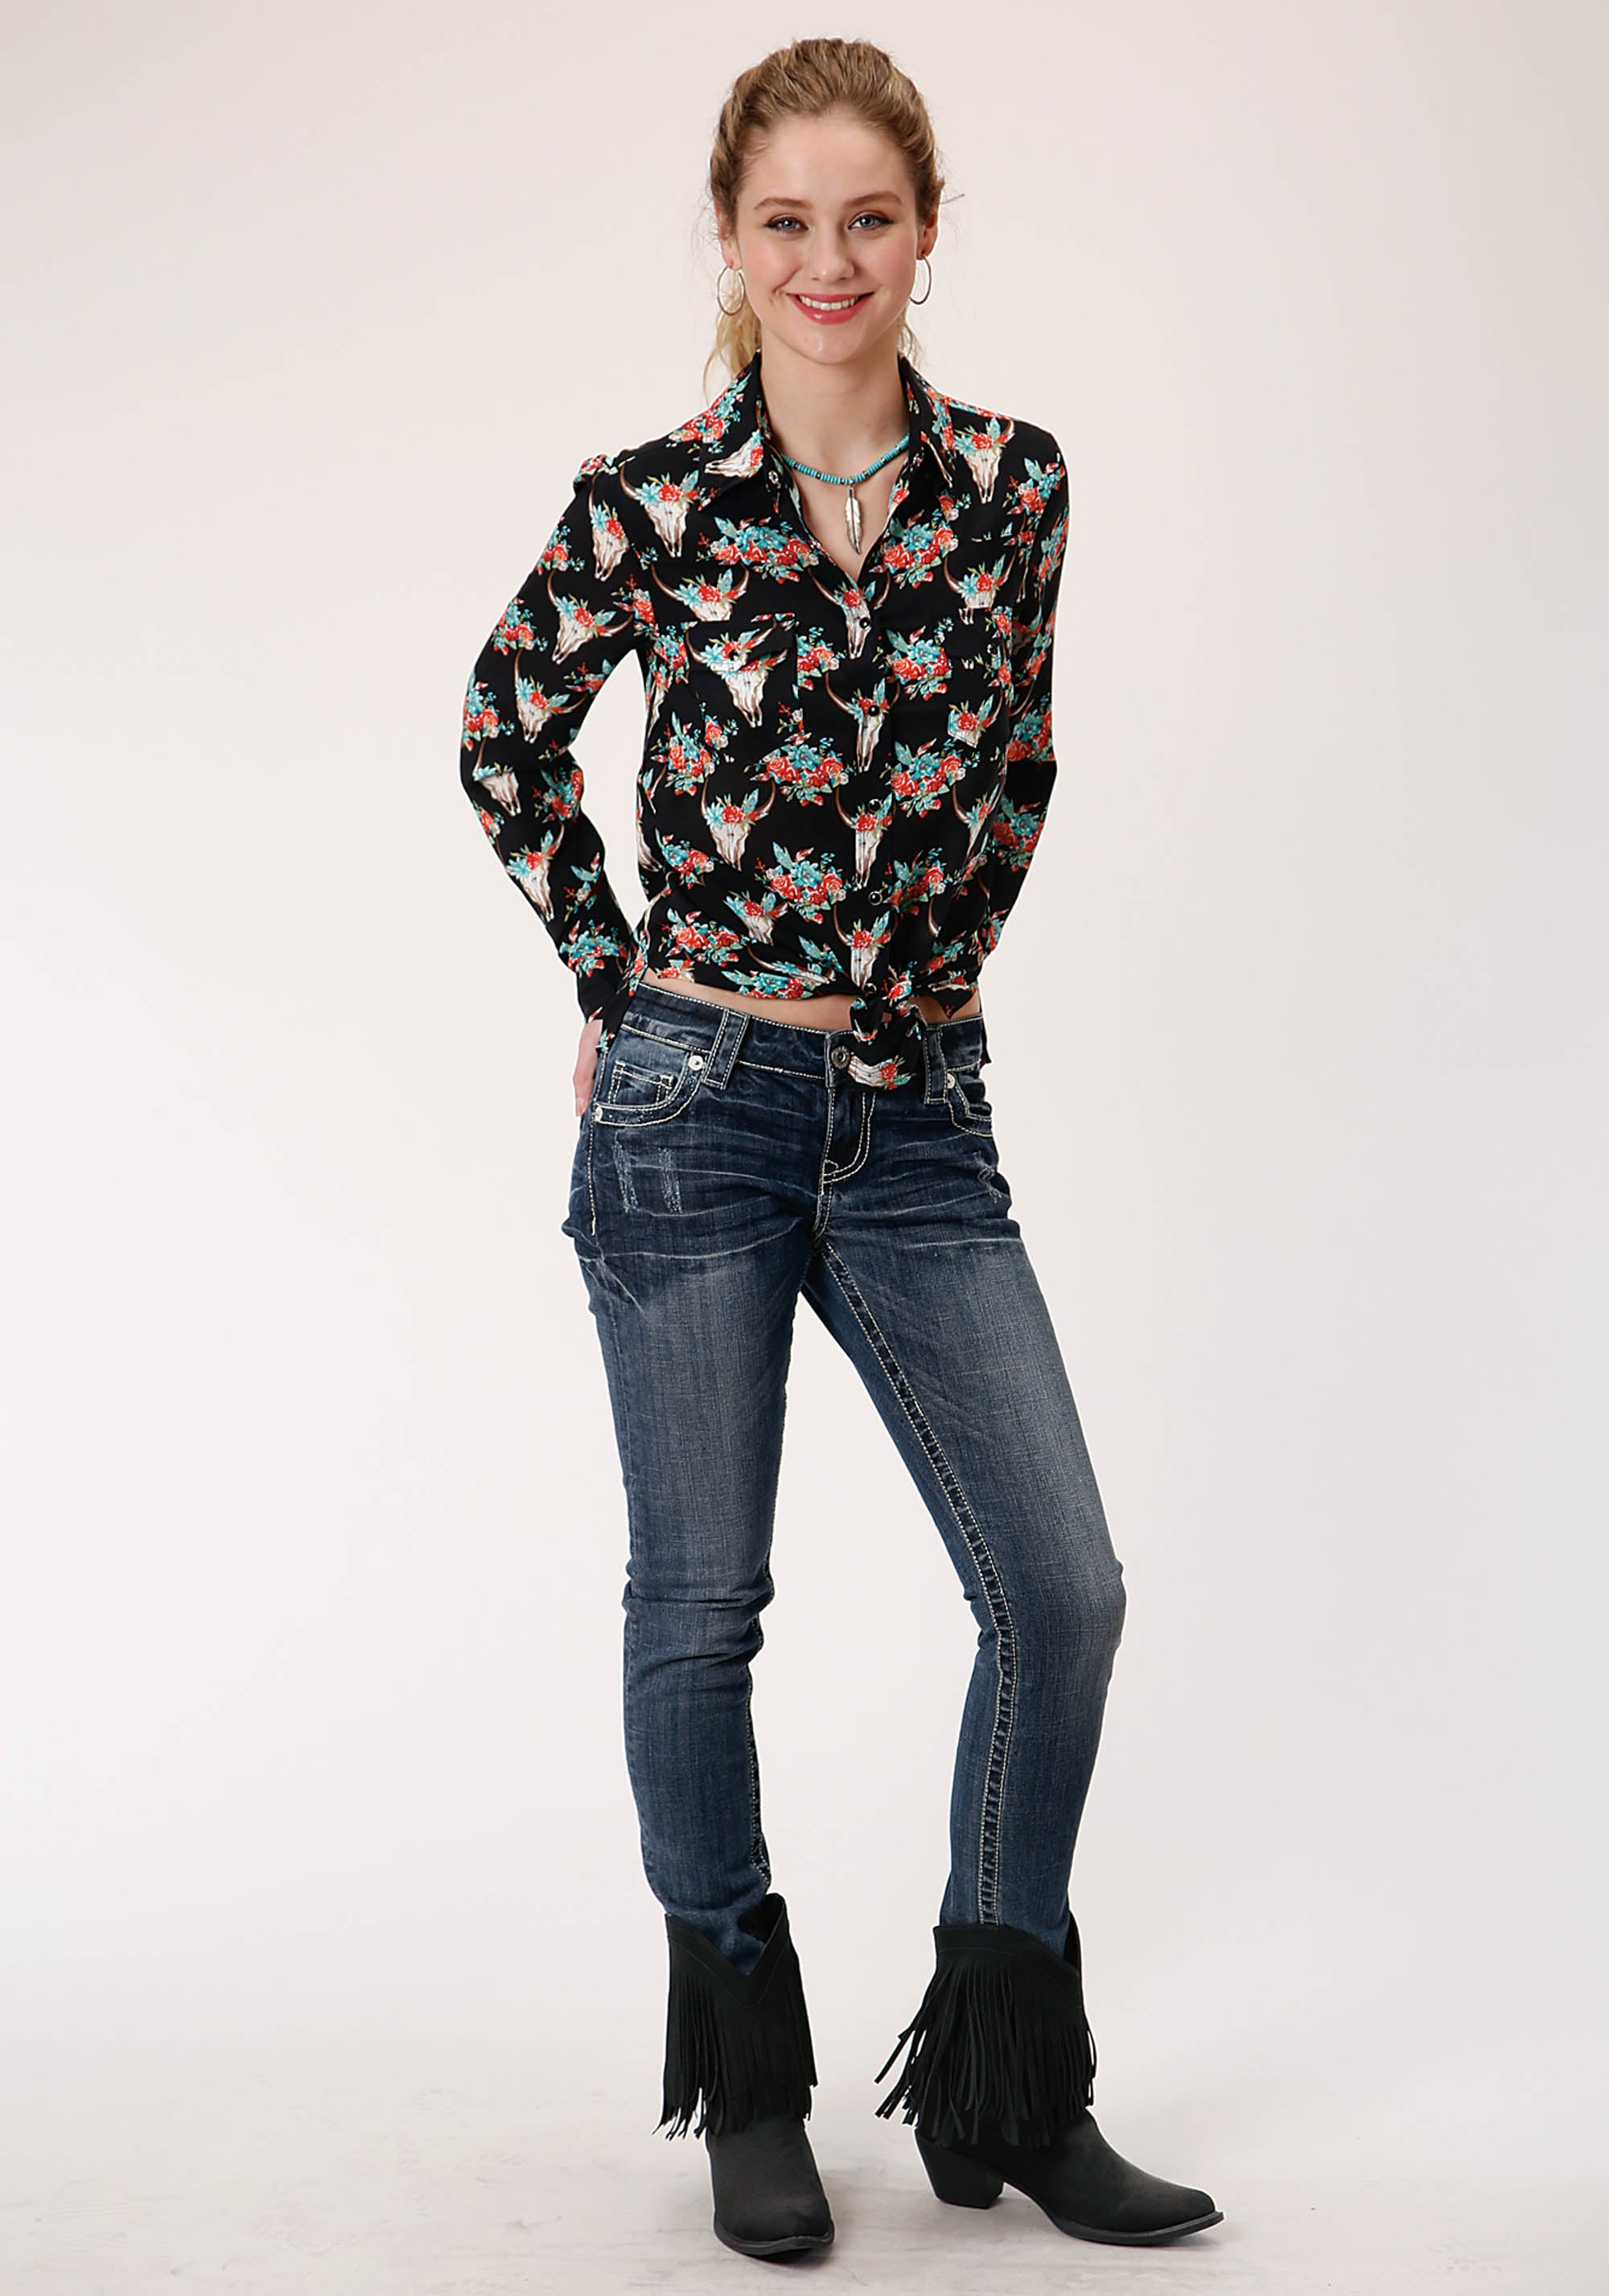 ROPER WOMENS BLACK 00335 FLORAL SKULLS PRT RAYON SHIRT FIVE STAR COLLECTION- FALL II LONG SLEEVE